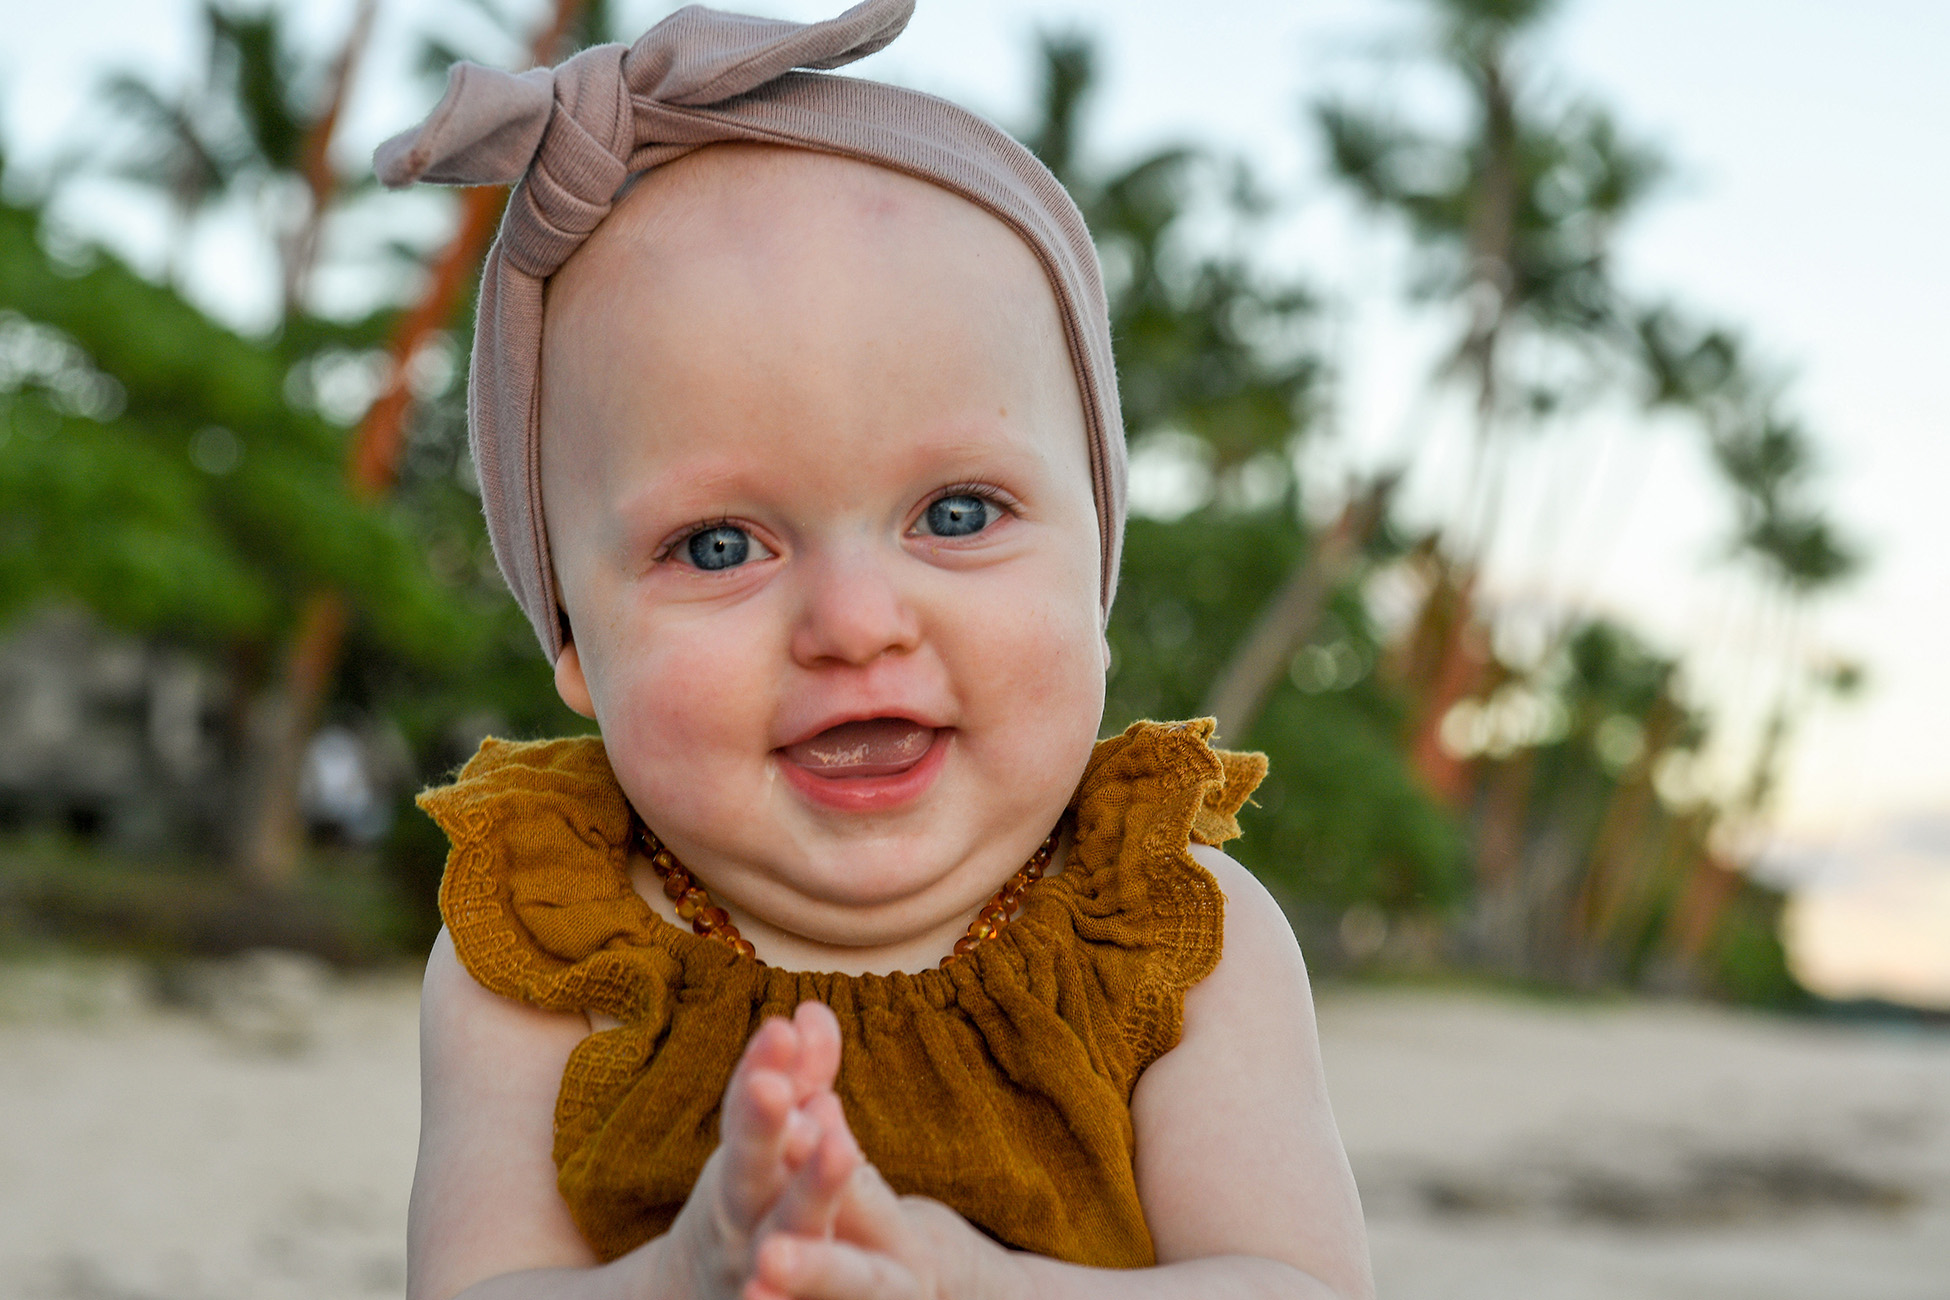 Portrait of a baby with beach and palm trees in the background